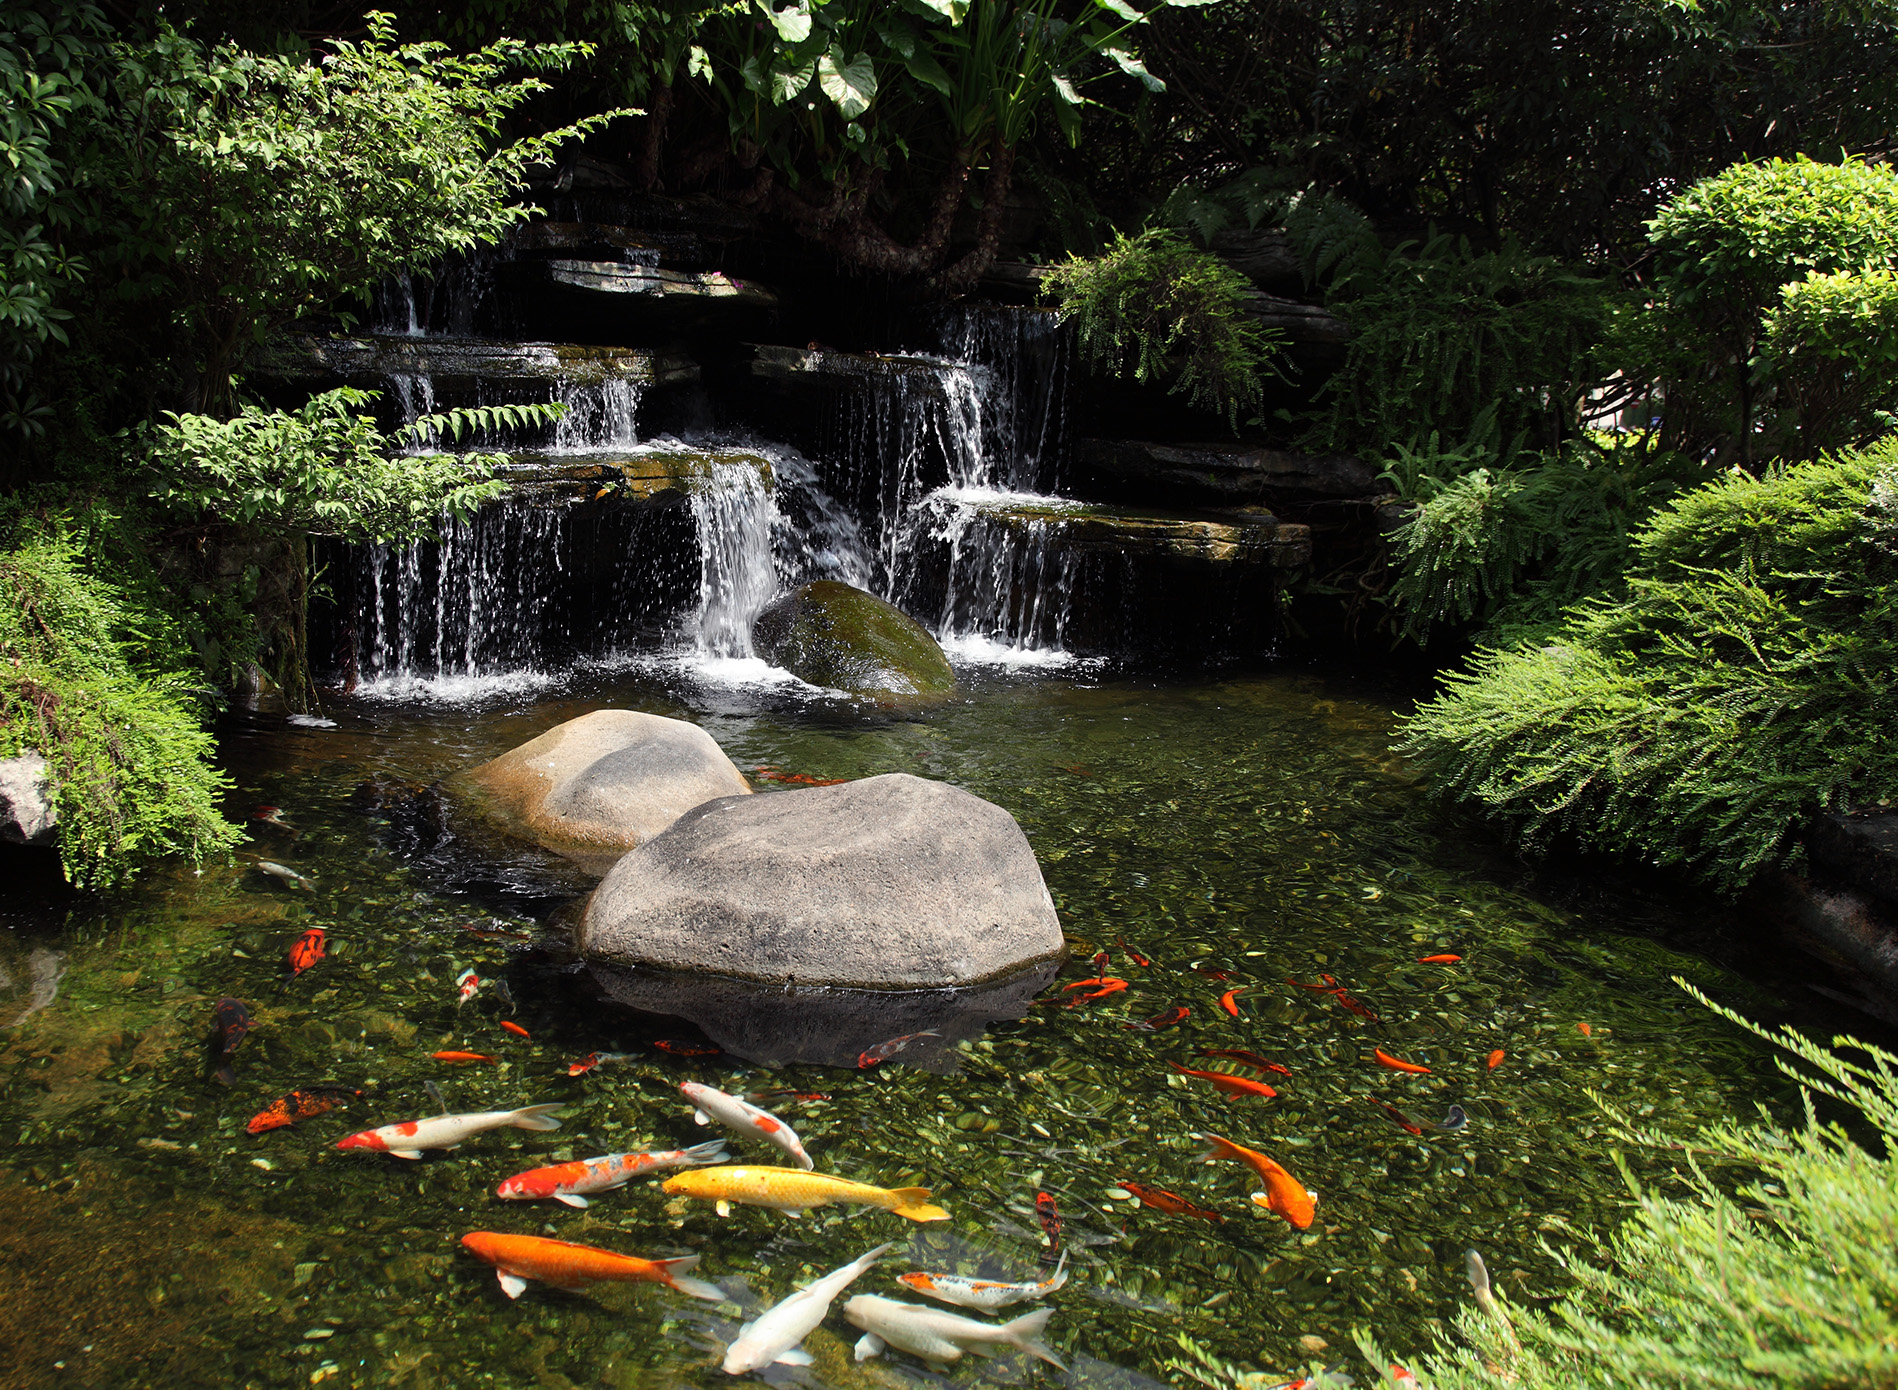 Fish koi ponds nualgi ponds for How to make koi pond water clear